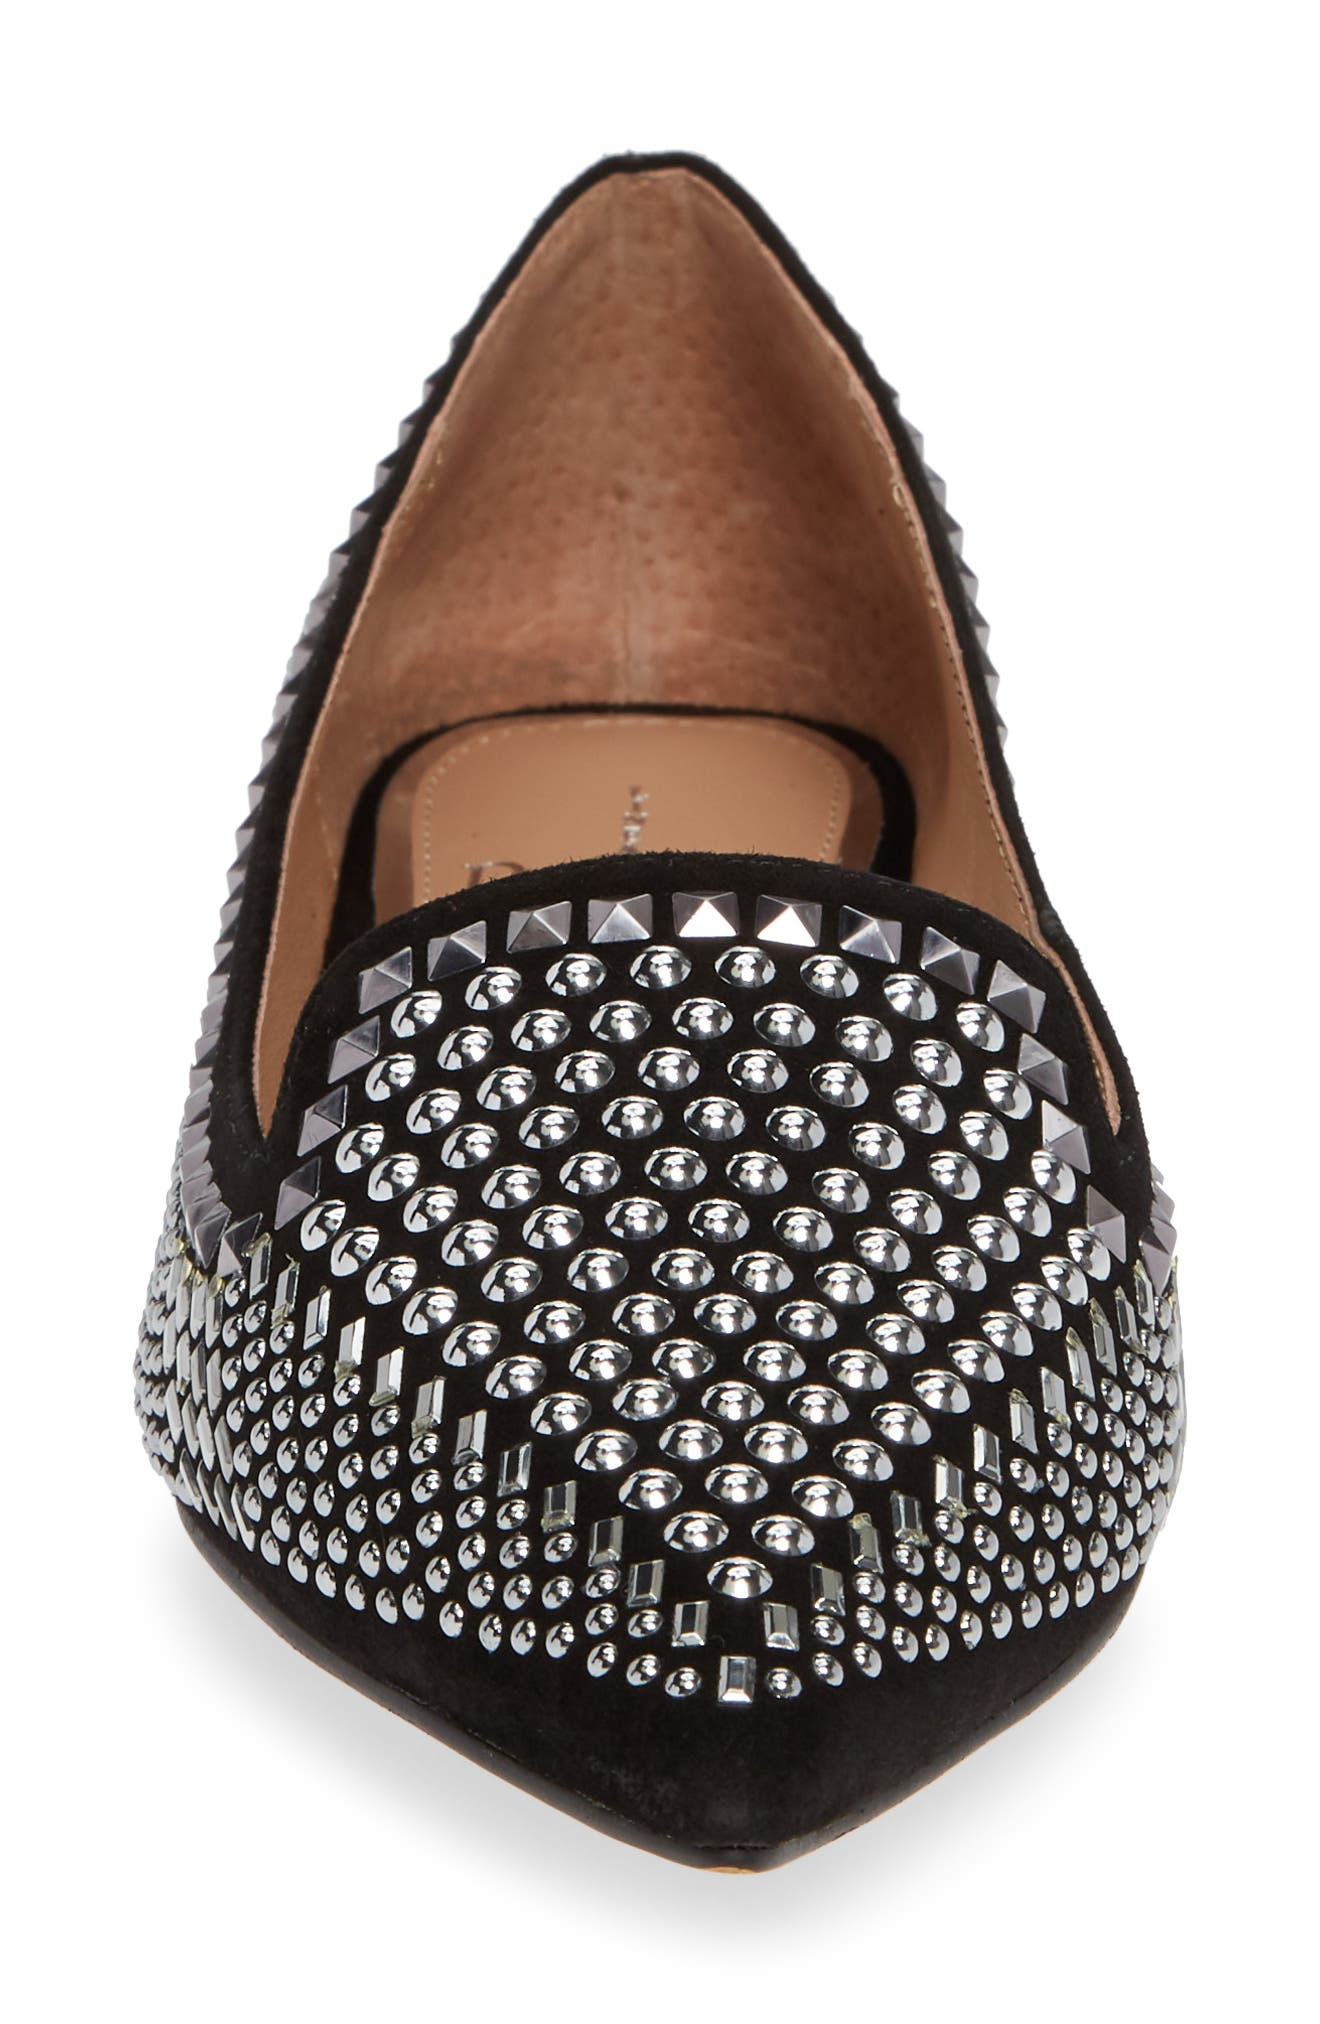 LINEA PAOLO, Portia Studded Loafer, Alternate thumbnail 4, color, BLACK SUEDE